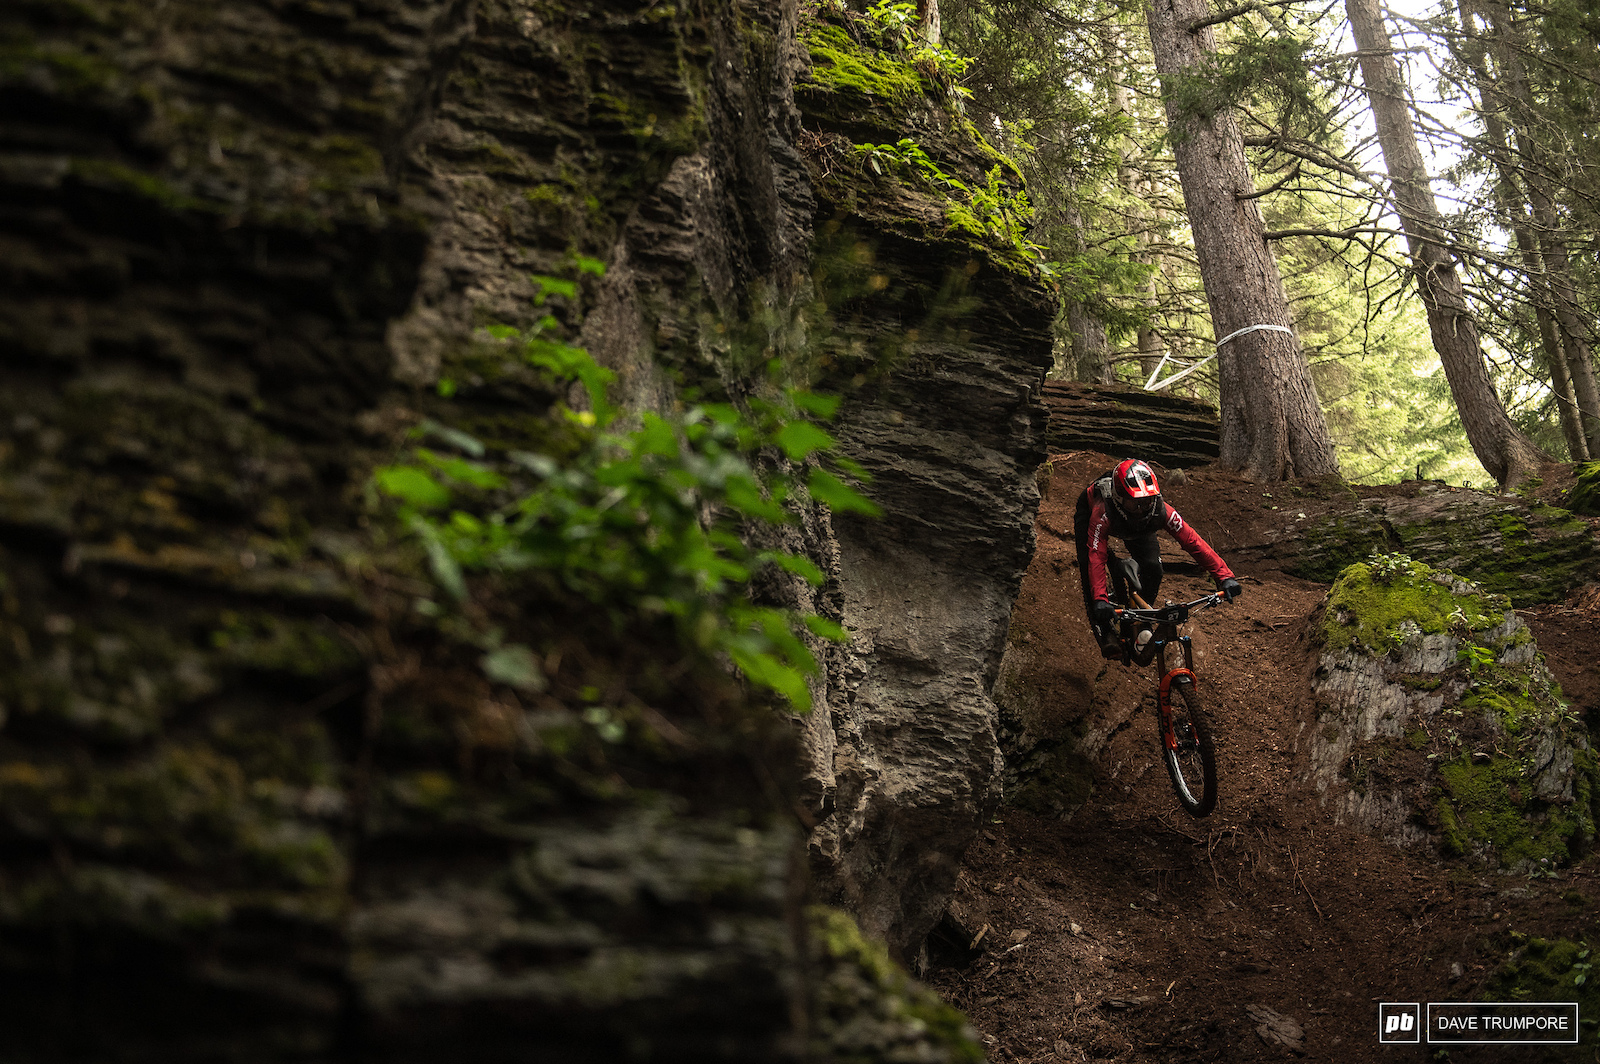 Damion Oton through the steep gully on the Pro Stage that will be raced Friday afternoon